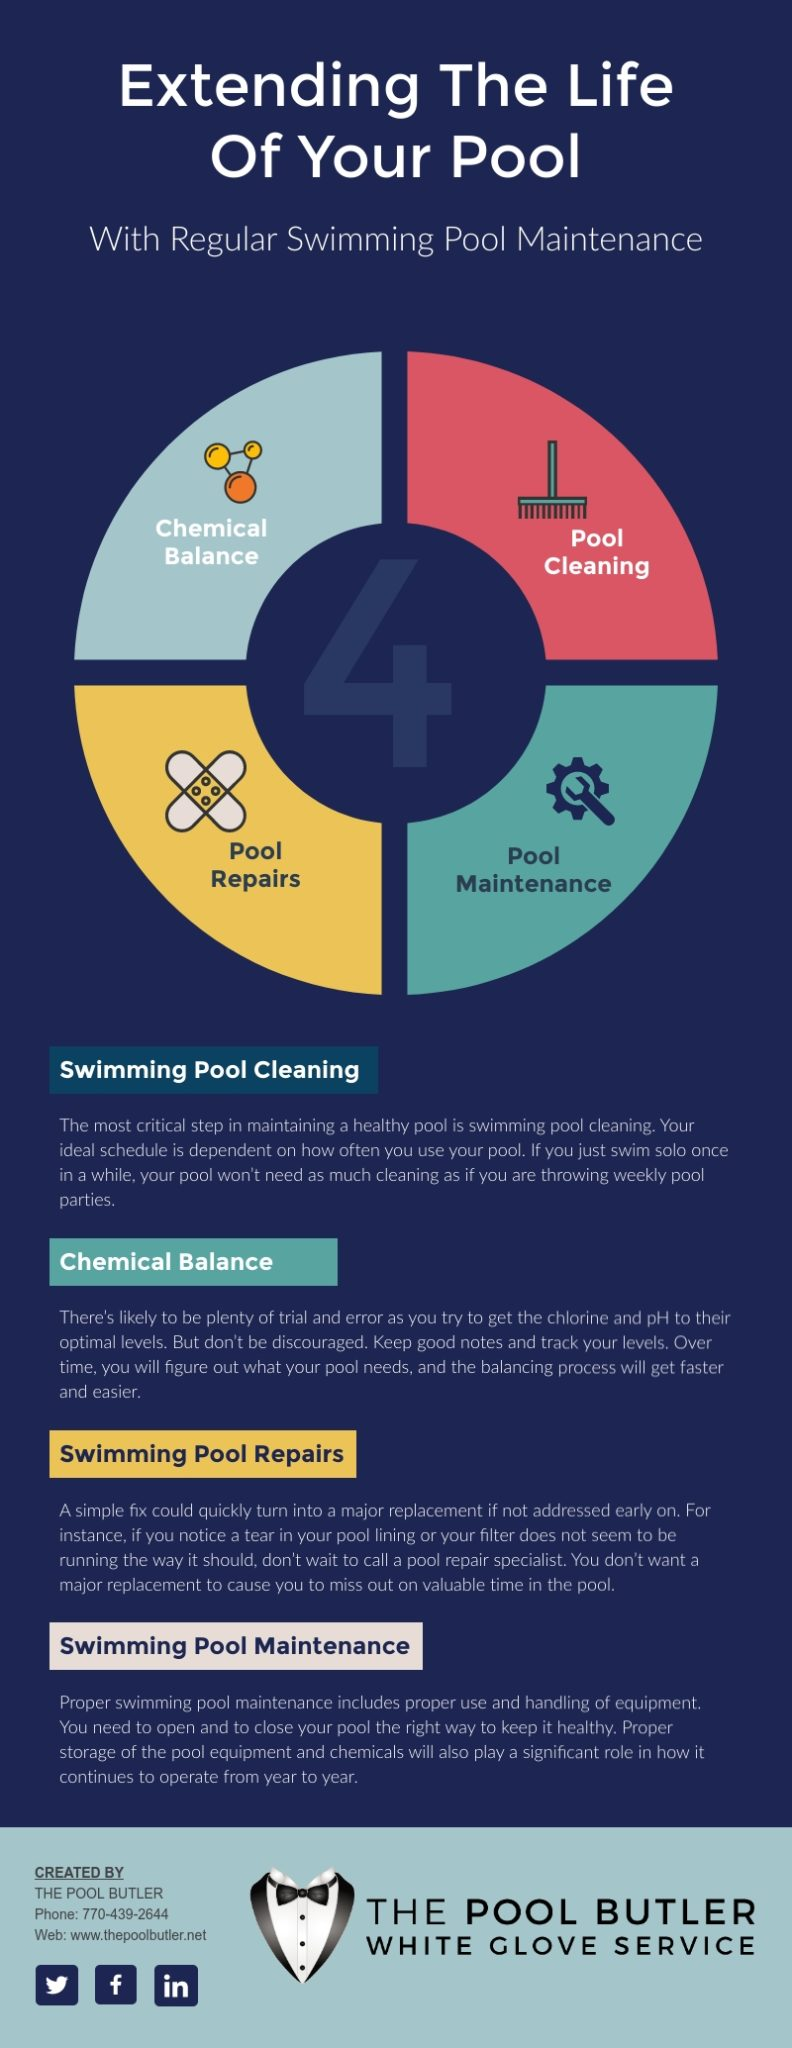 Extending The Life Of Your Pool With Regular Swimming Pool Maintenance [infographic]